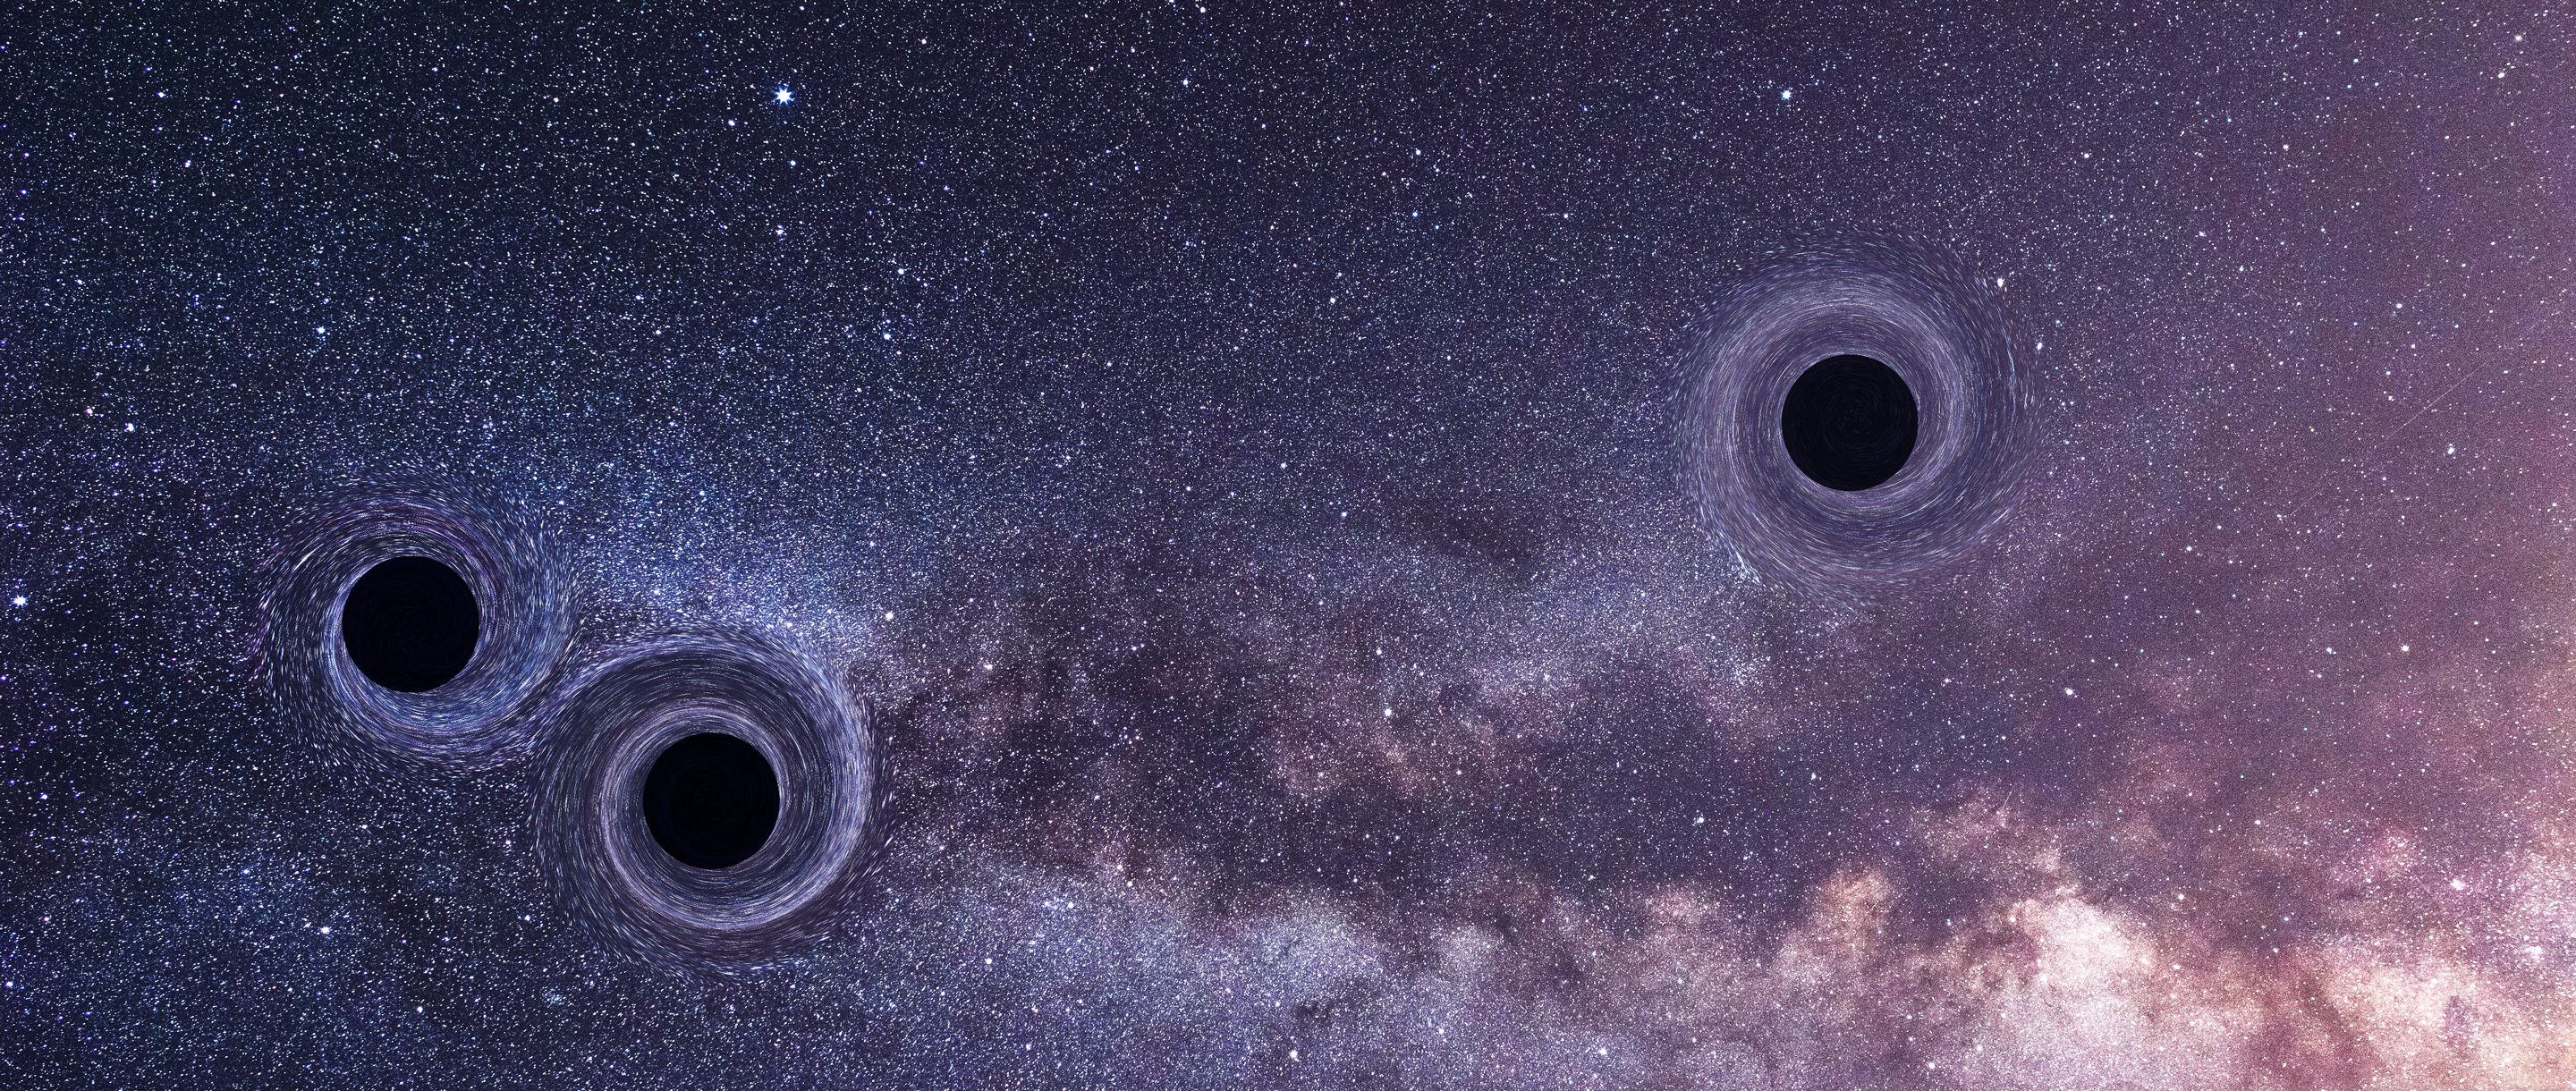 Illustration of three black holes on a starry background